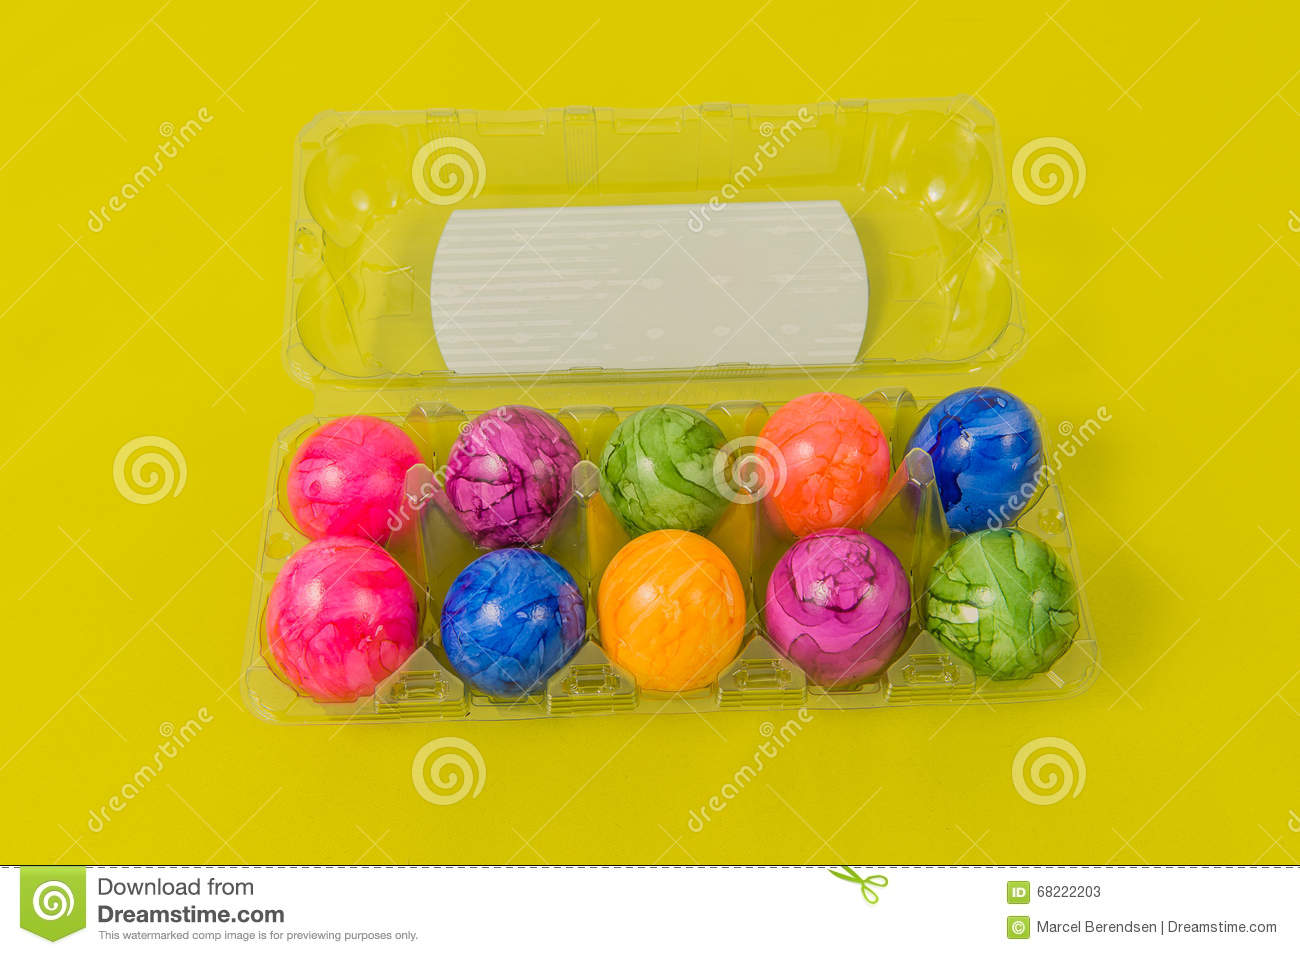 Seasonal - Easter - Coloured Eggs